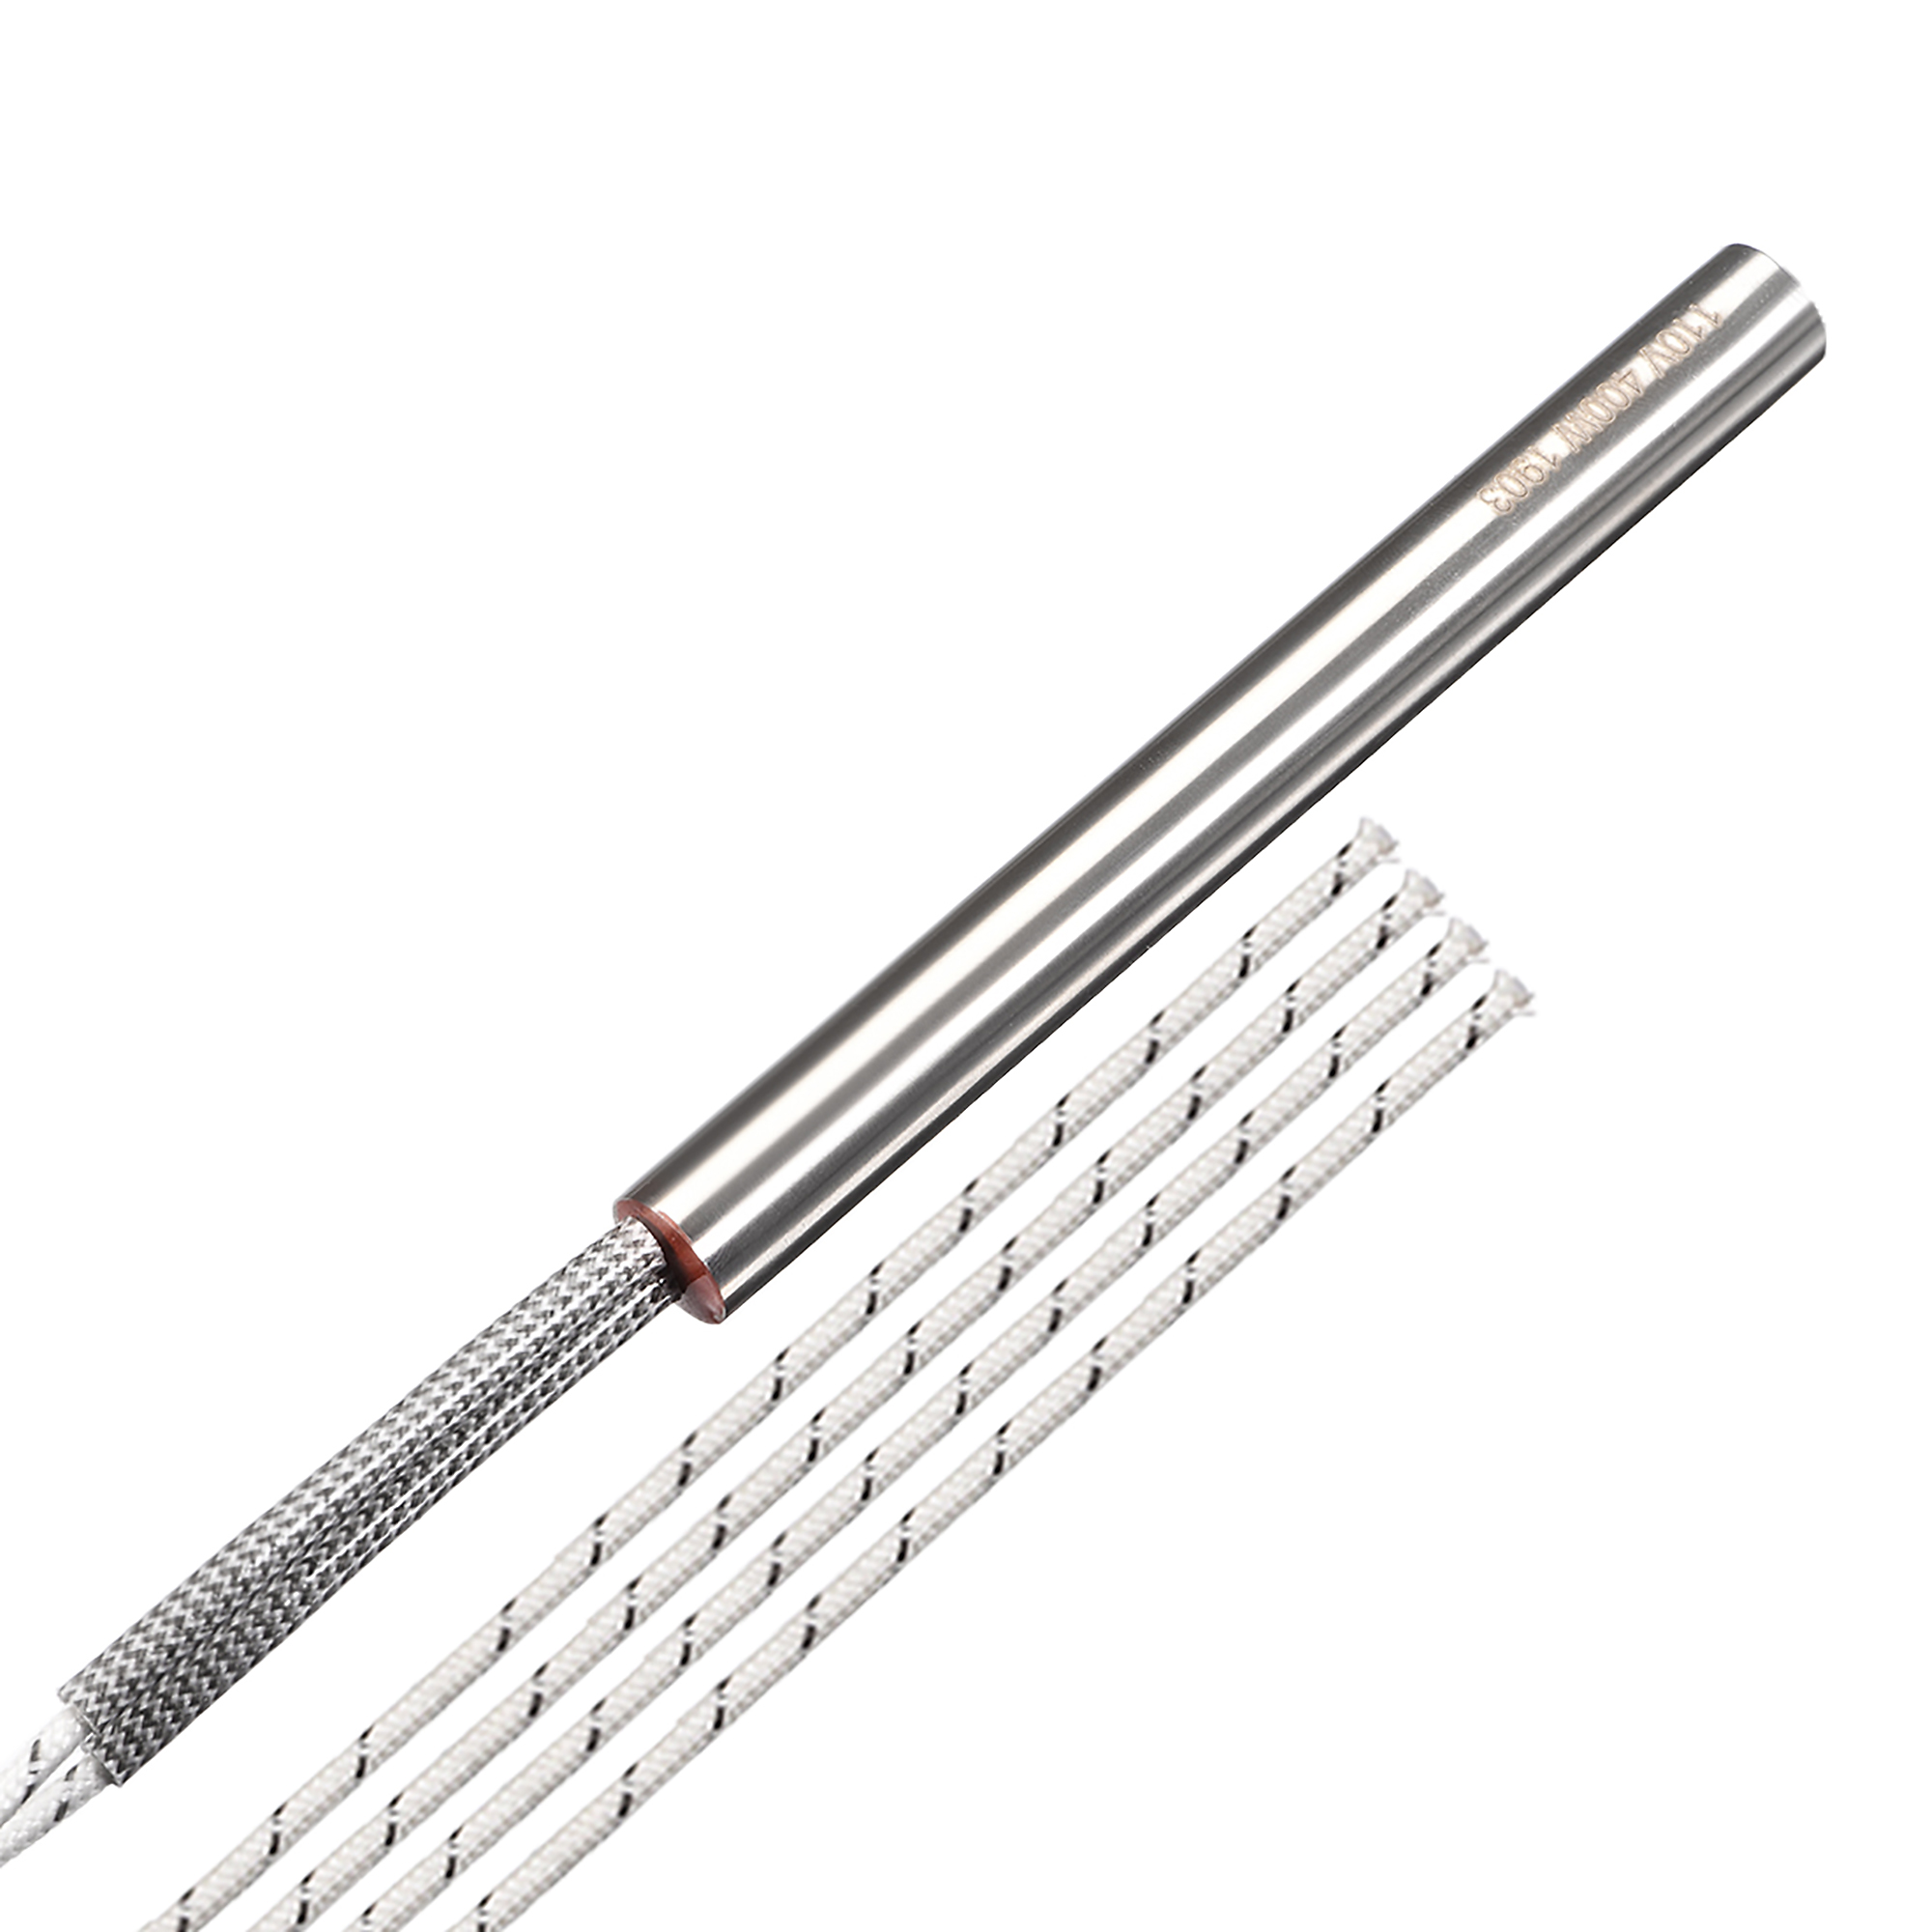 110v Electric Heater Elements